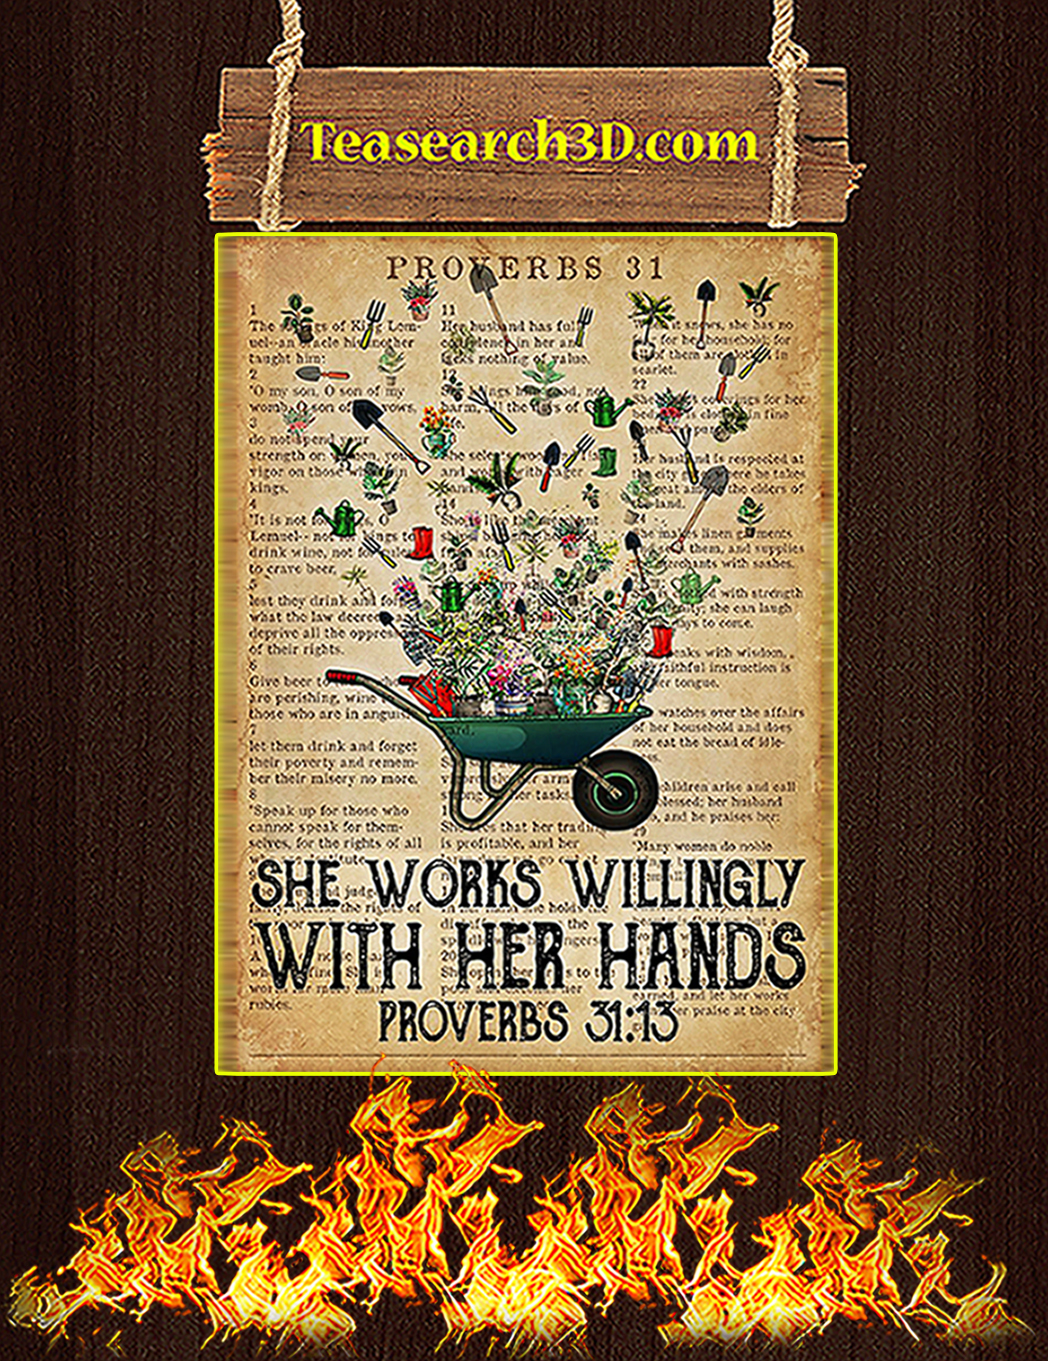 Garden She works willingly with her hands poster A1